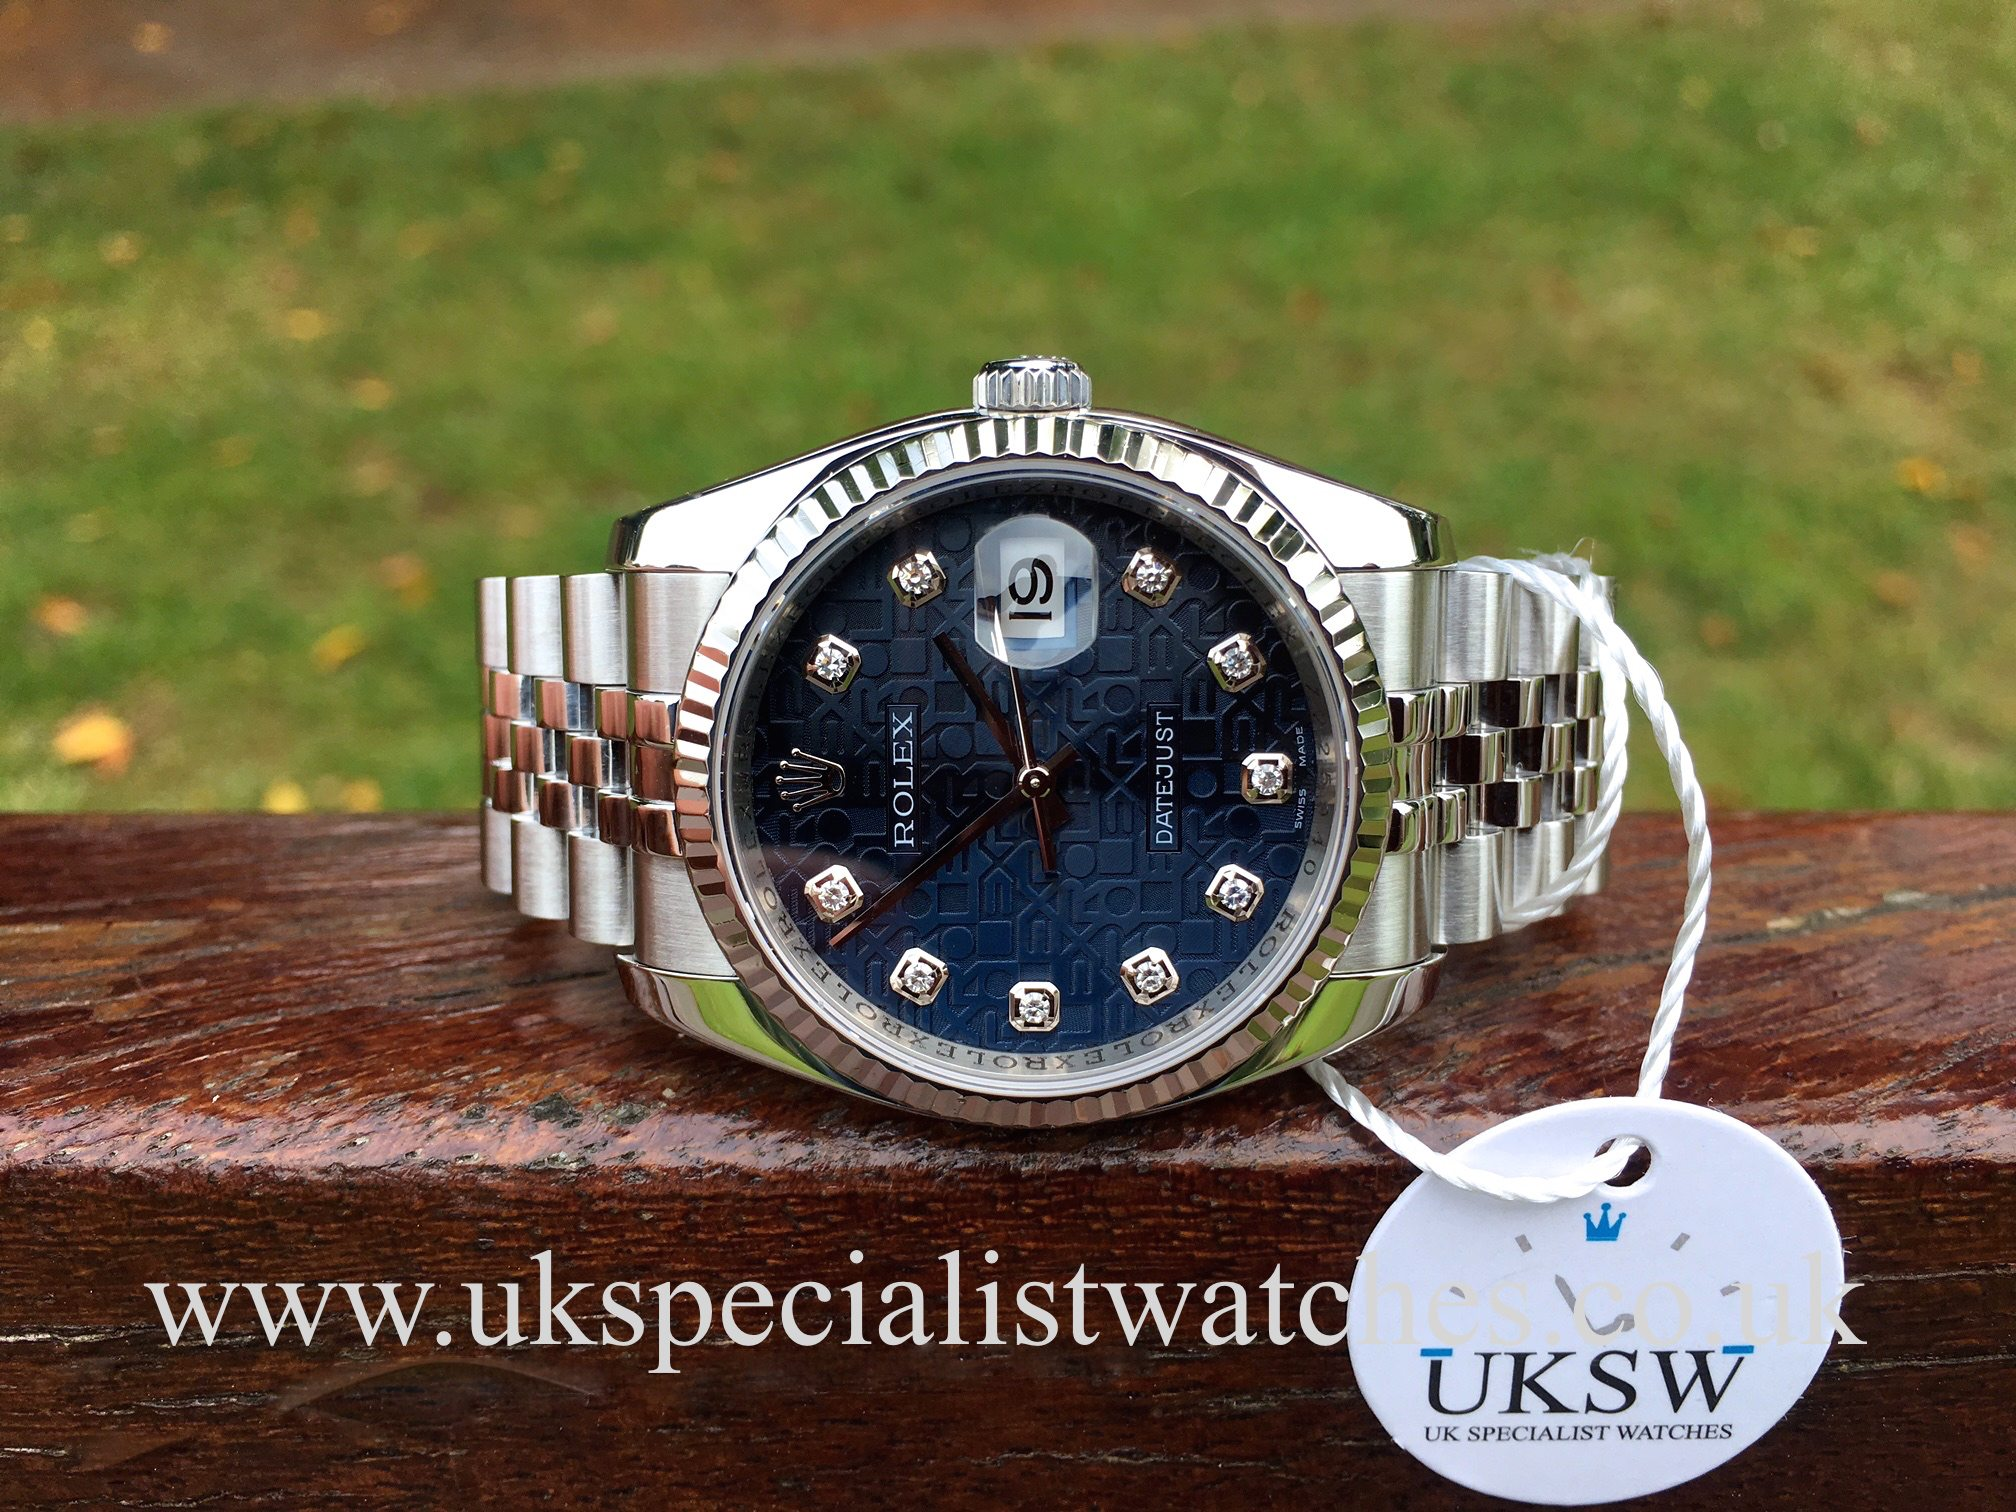 79554e82c0d U.K Specialist Watches have a Rolex Datejust 116234 with a factory Rolex  blue diamond jubilee dial